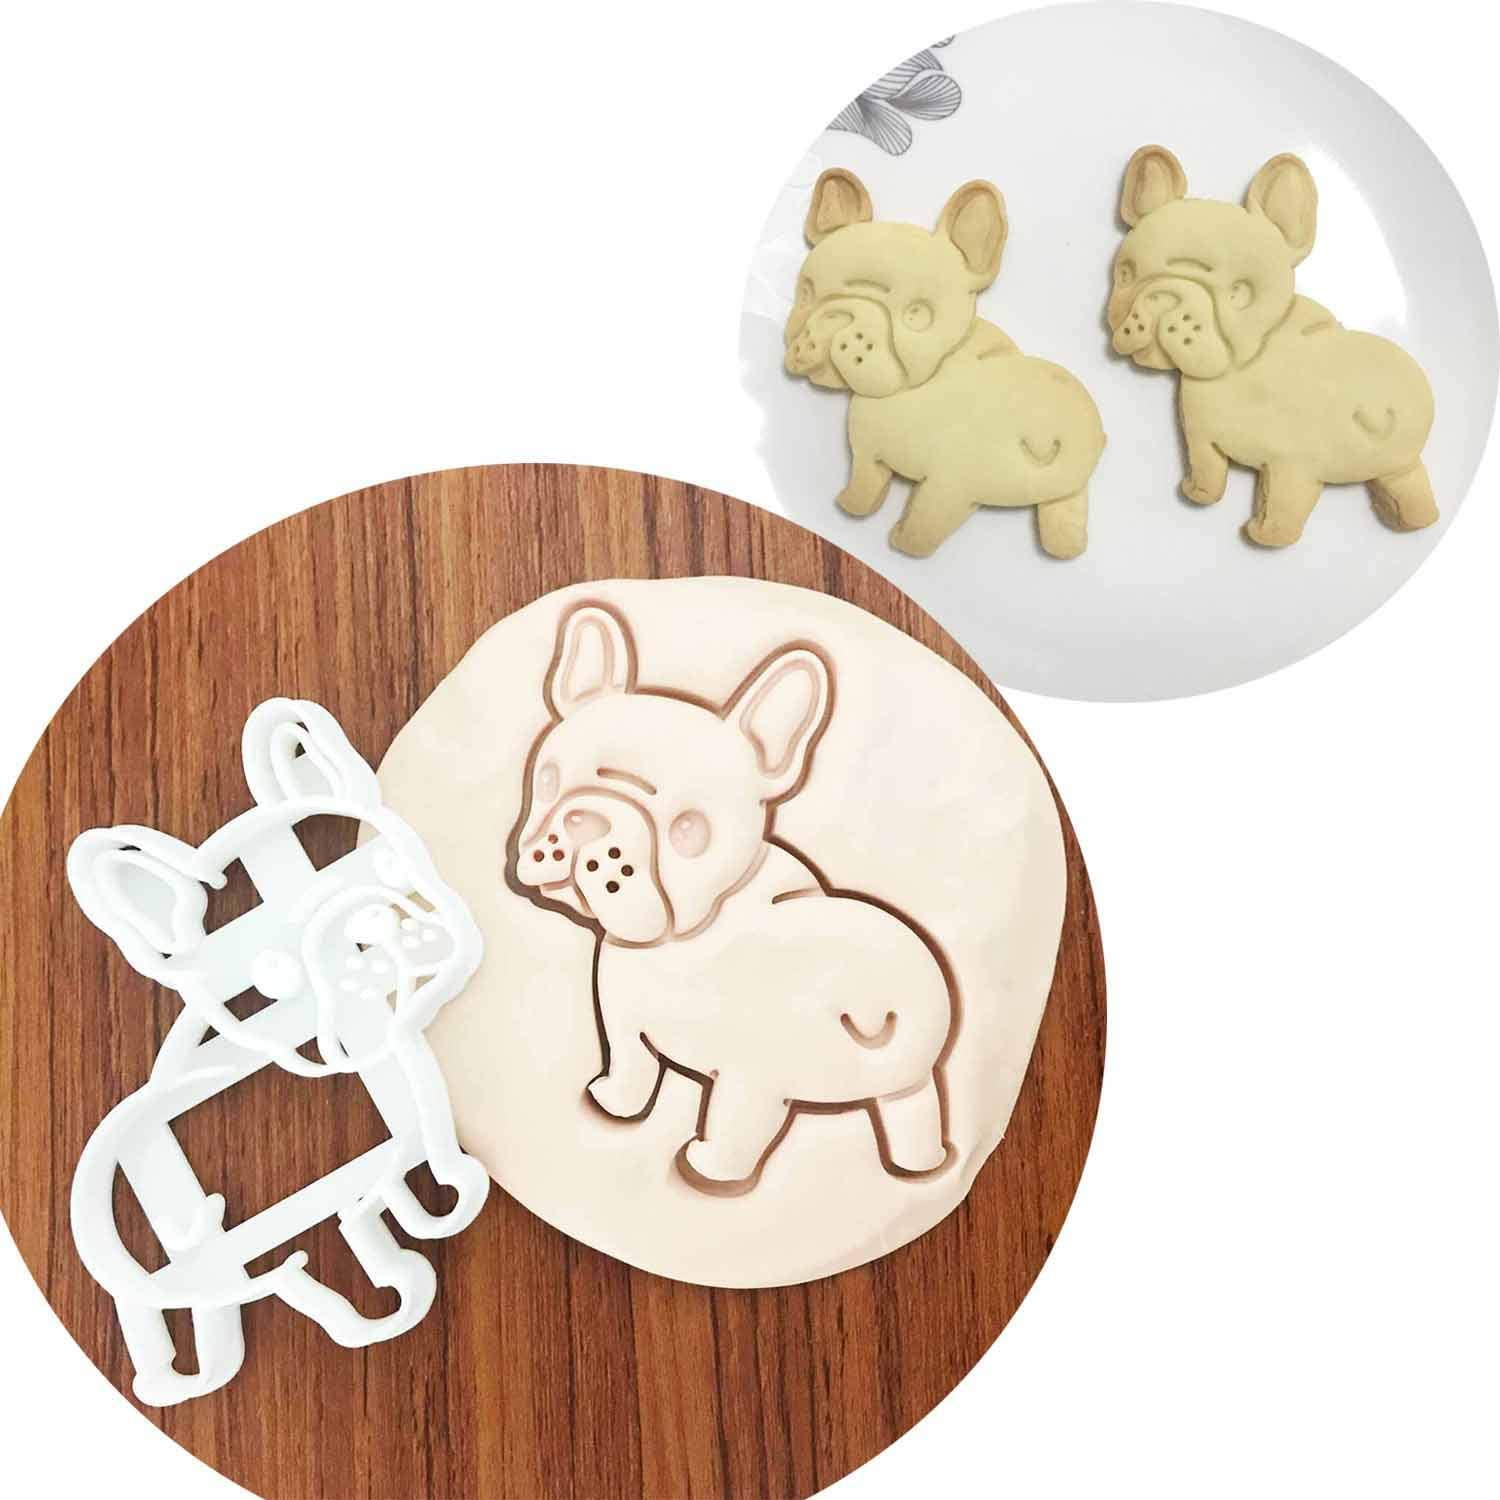 Details about  /Bulldog Cookie Cutter Play Doh Biscuit Pastry Dough Baking Mold Mould Cake Decor